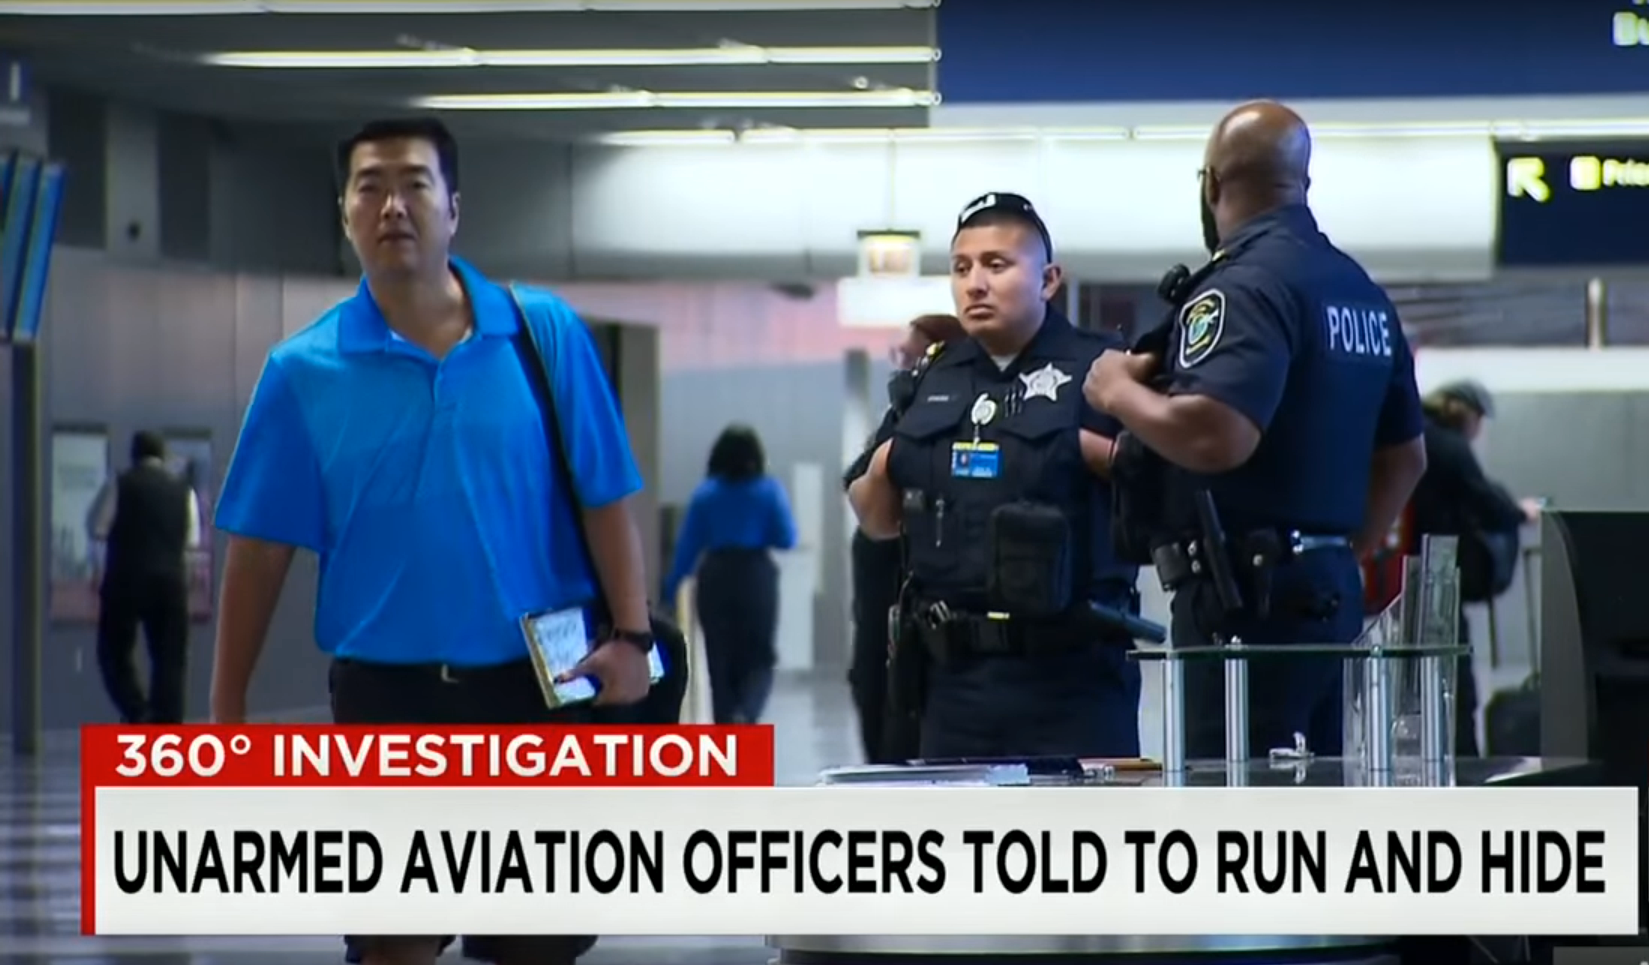 US Airport Police Trained to Run and Hide in Active Shooter Situations